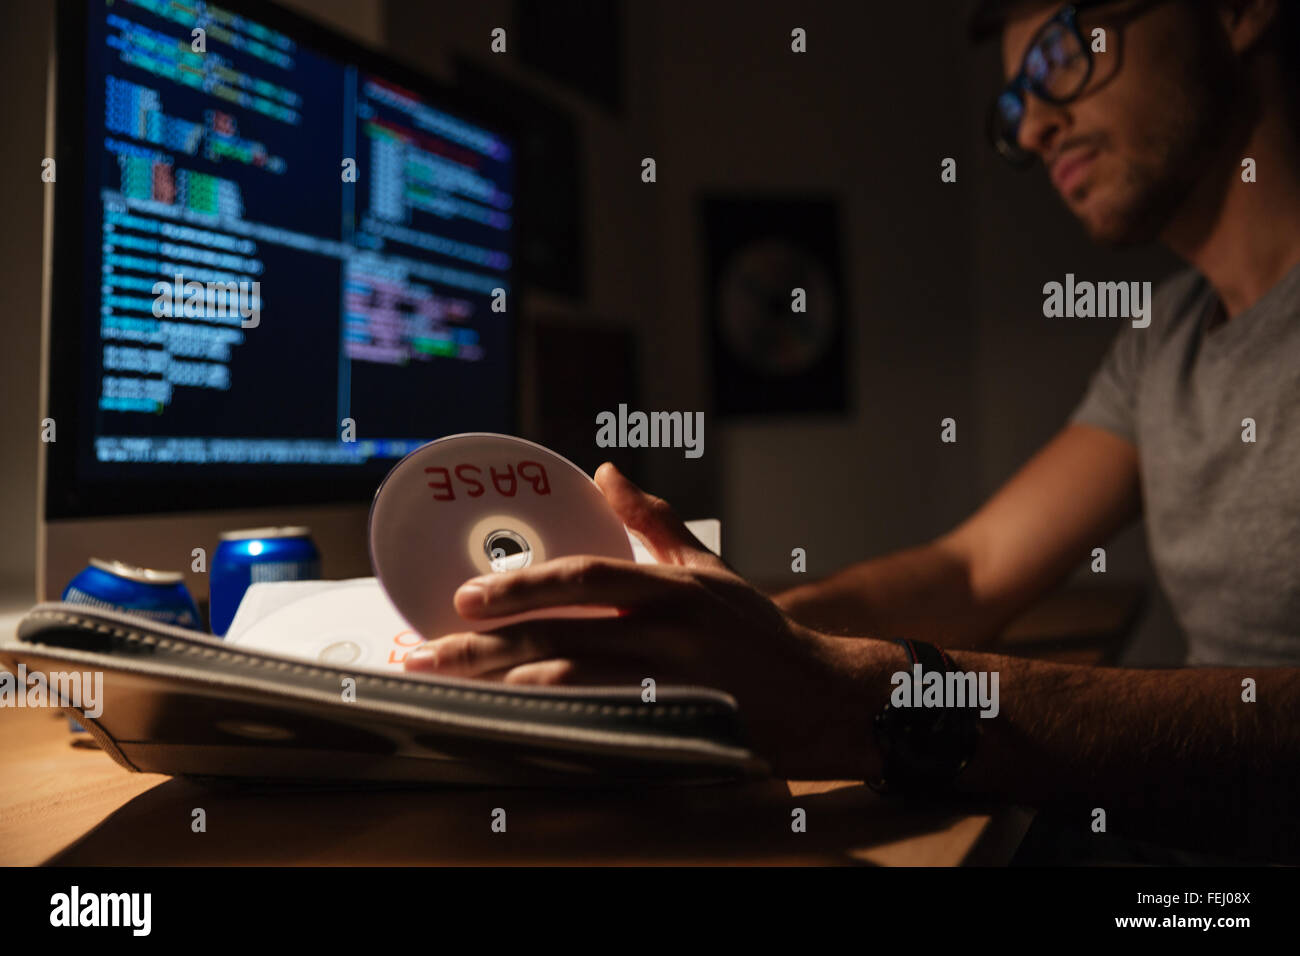 Confident young programmer taking cd with base and coding on computer in dark room - Stock Image